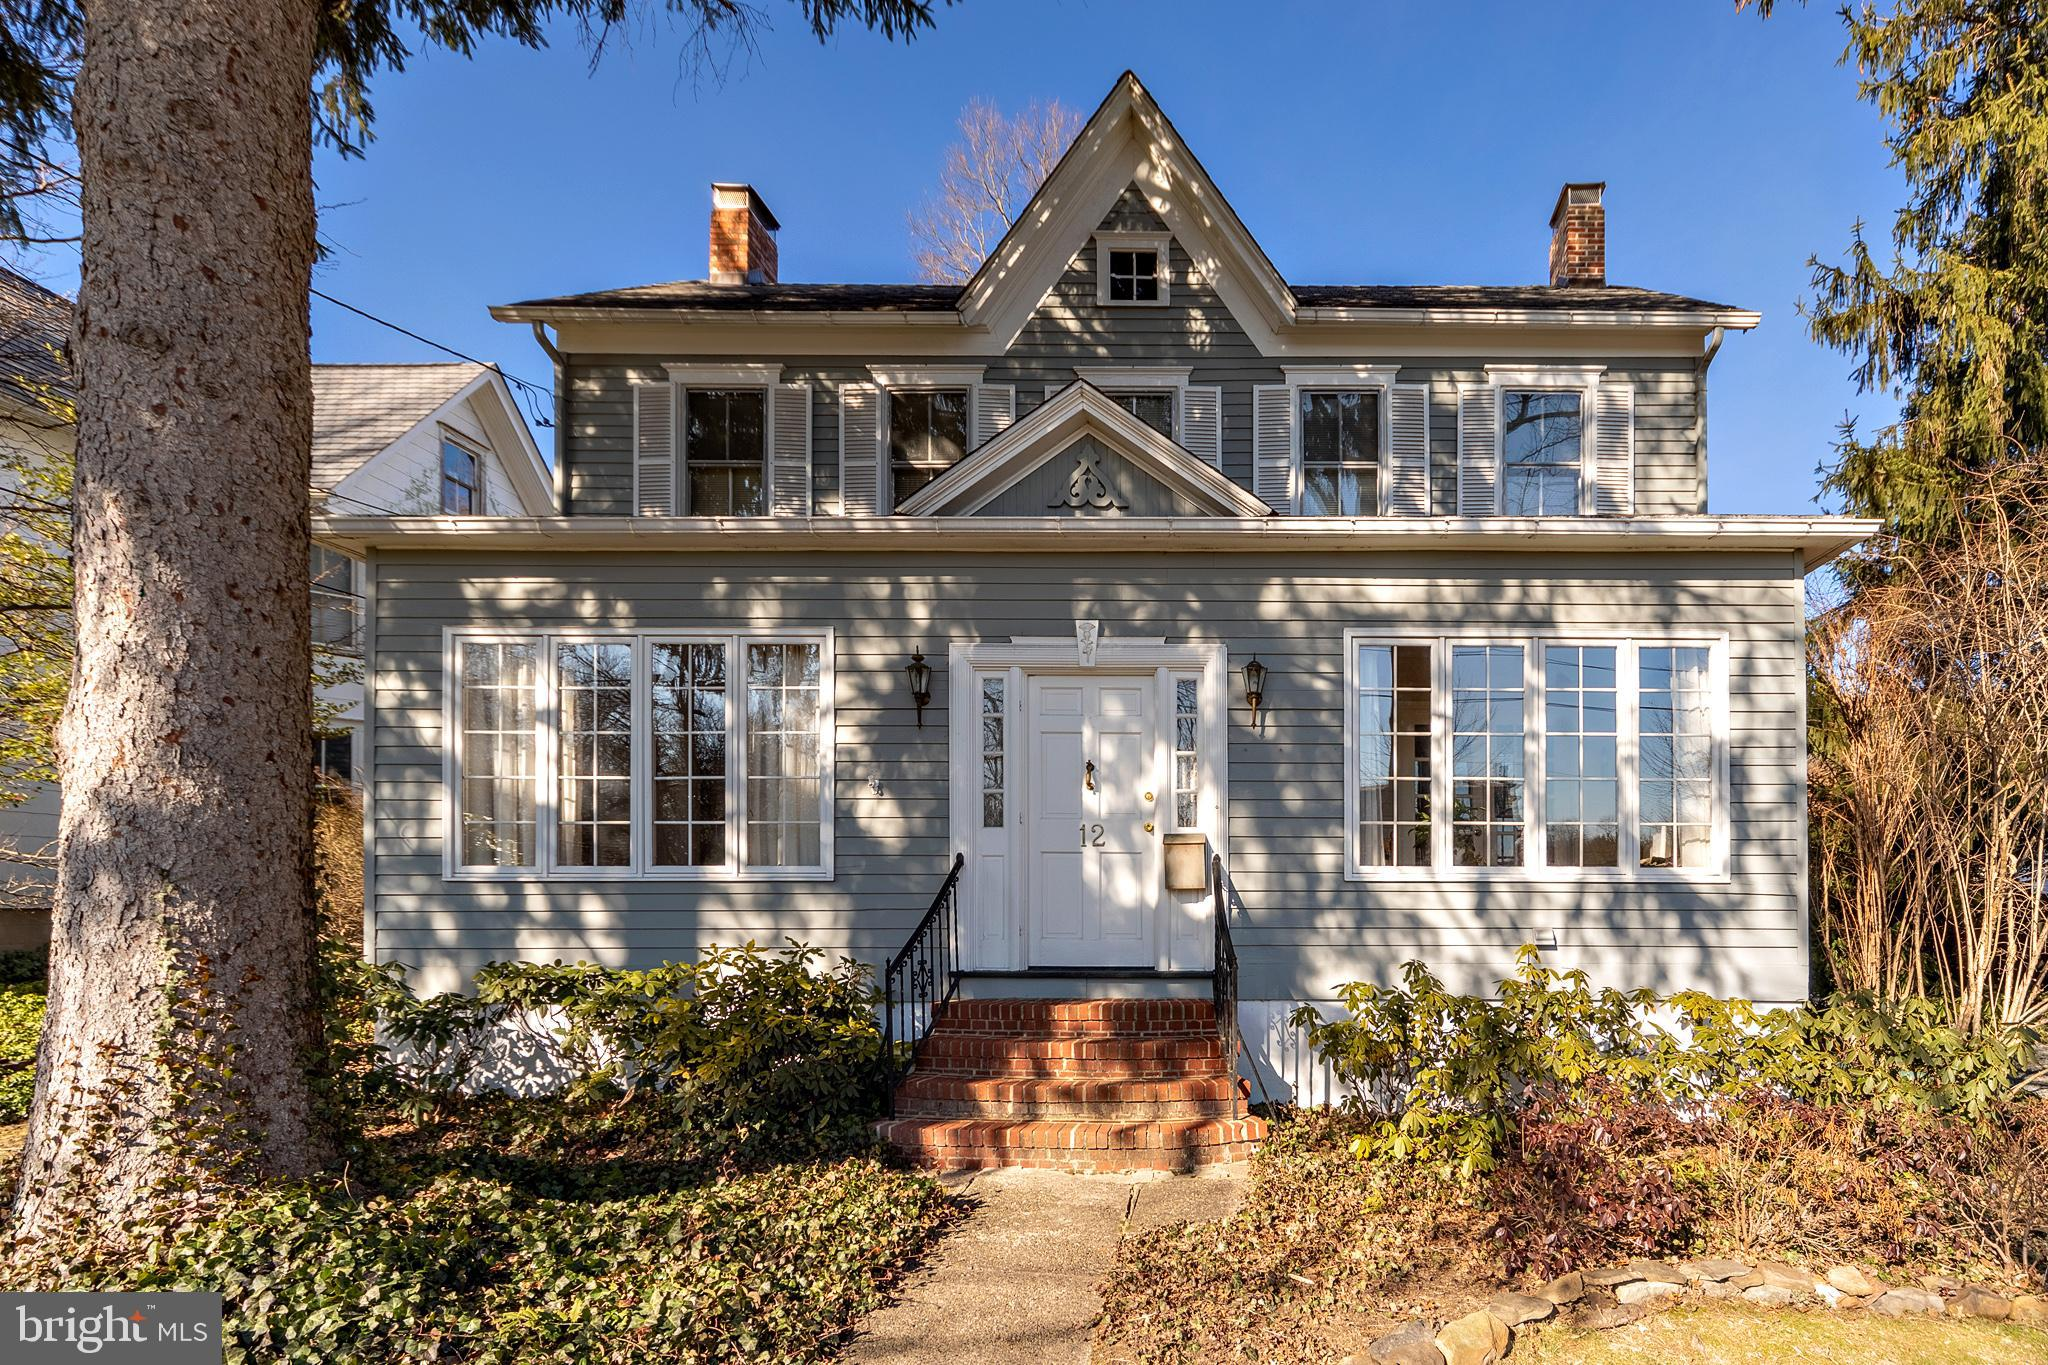 12 FRONT STREET, HOPEWELL, NJ 08525